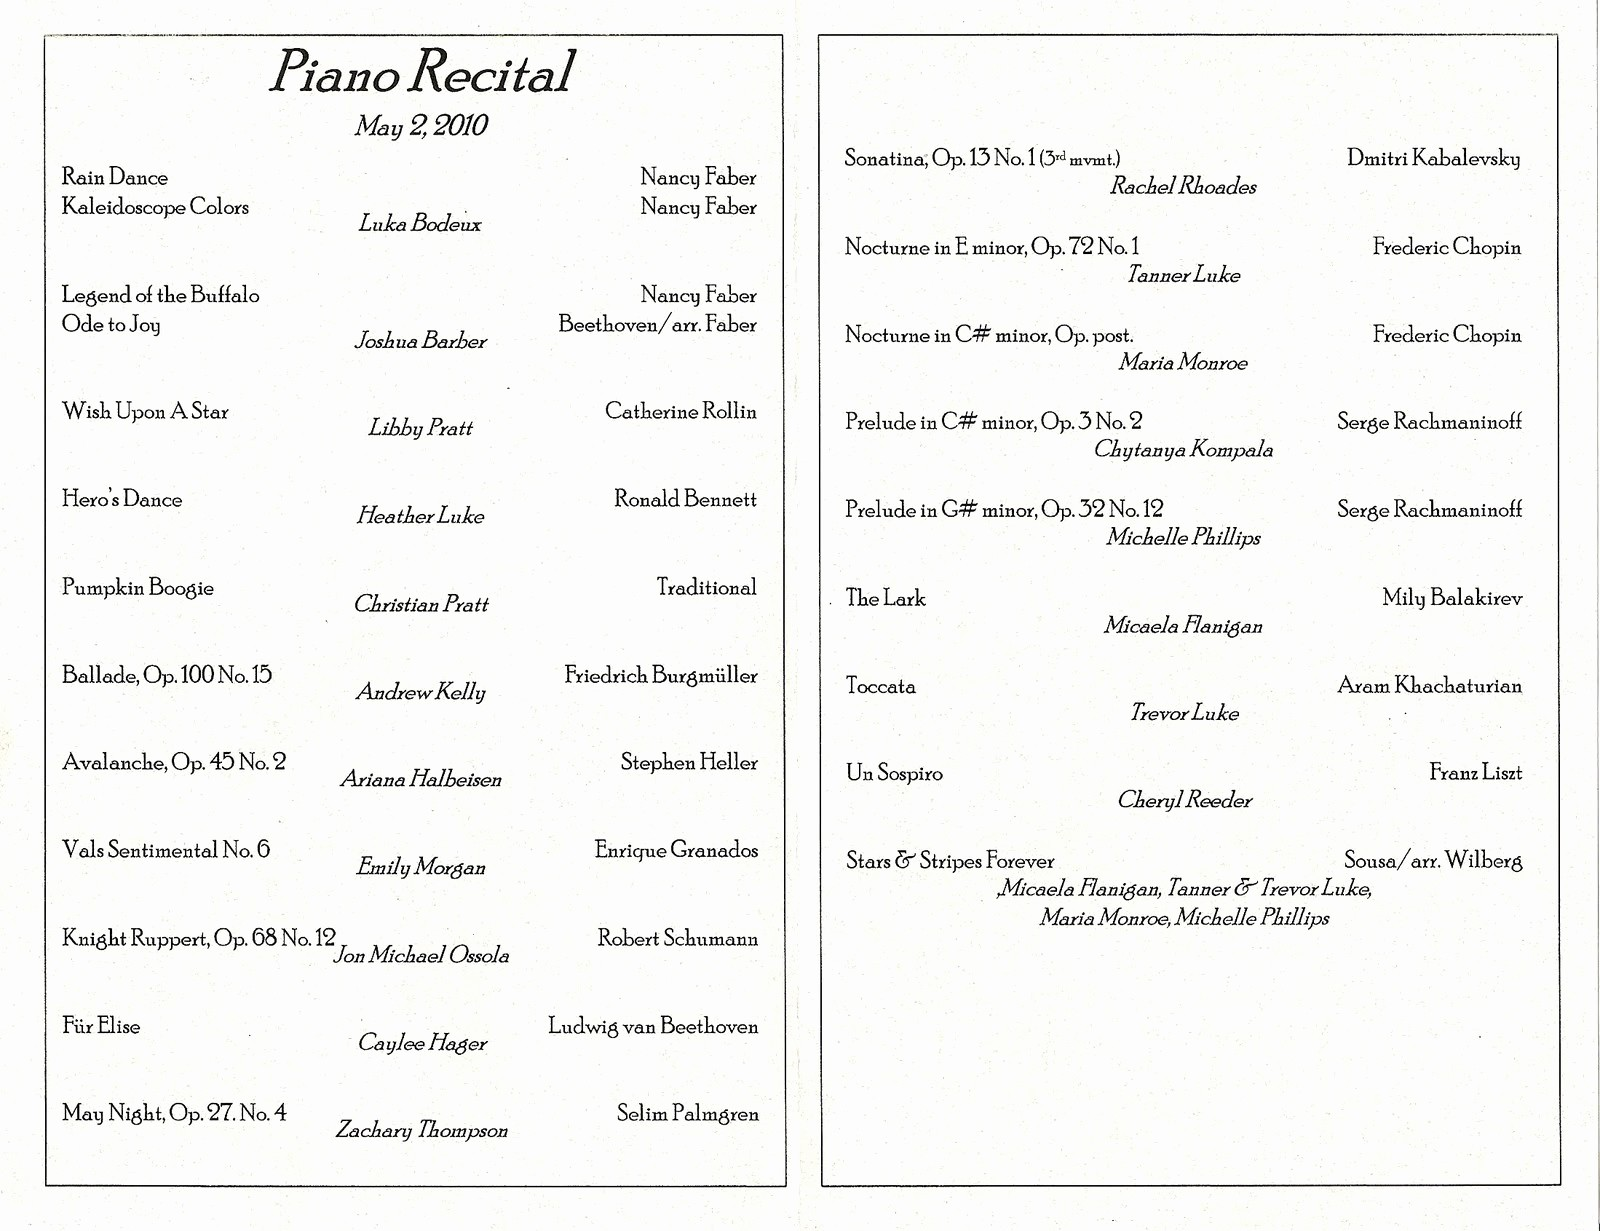 Piano Recital Program Template Free Fresh Bodeux Blog April & May Family Videos